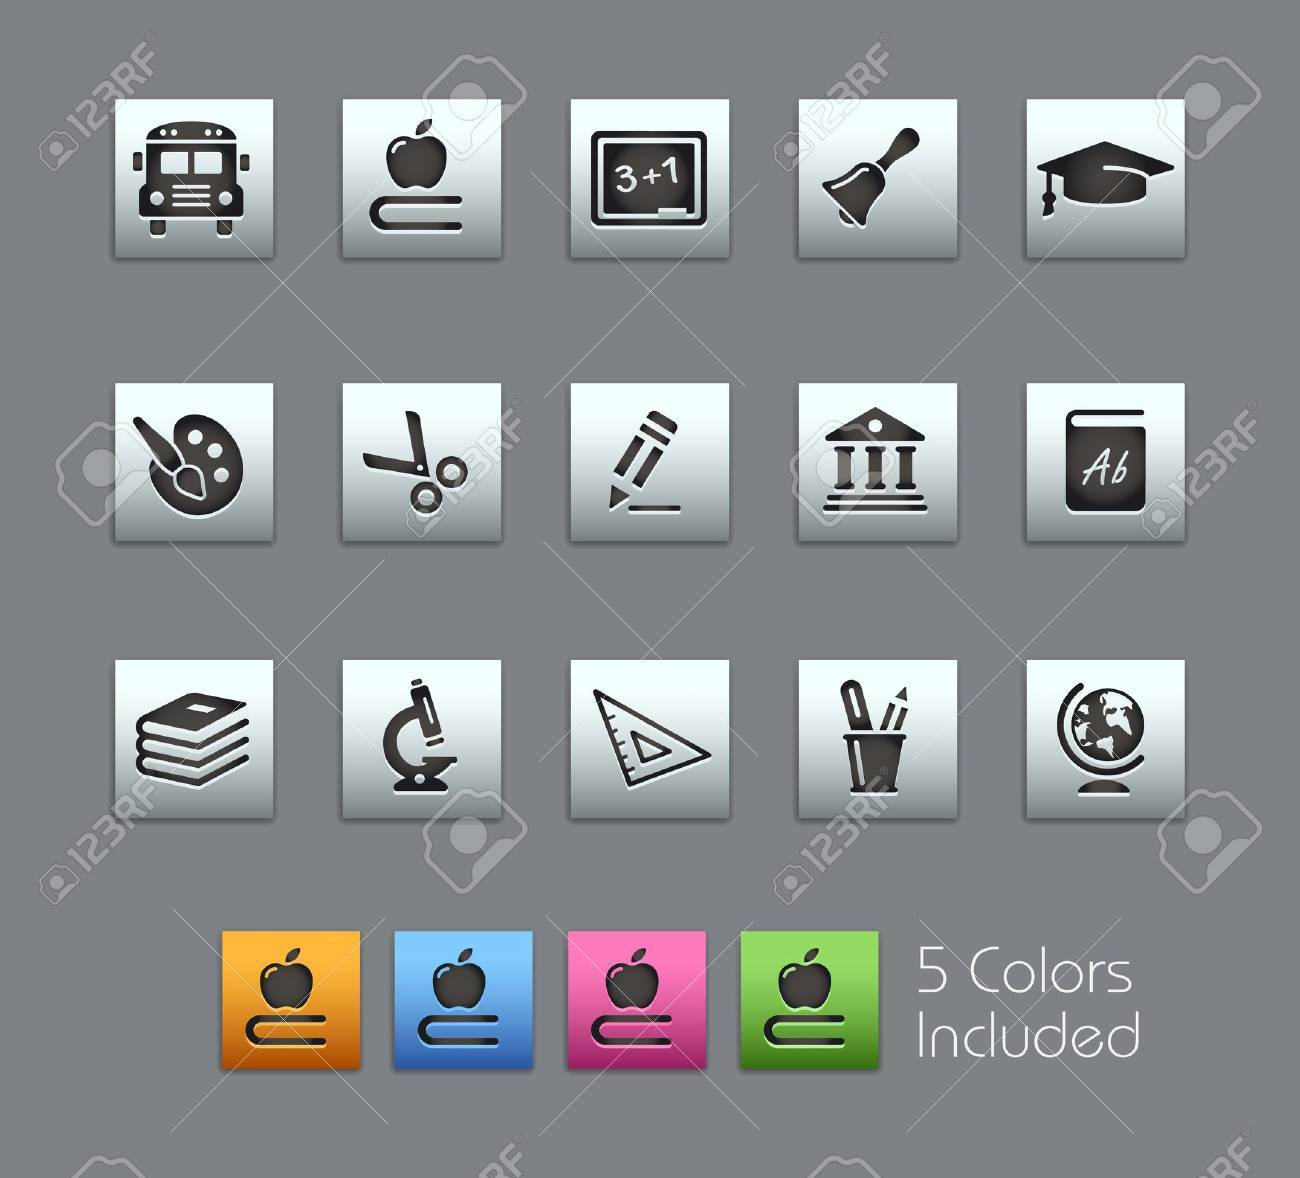 School and Education Icons -- Vector file includes 5 color versions for each icon in different layers Stock Vector - 18462697